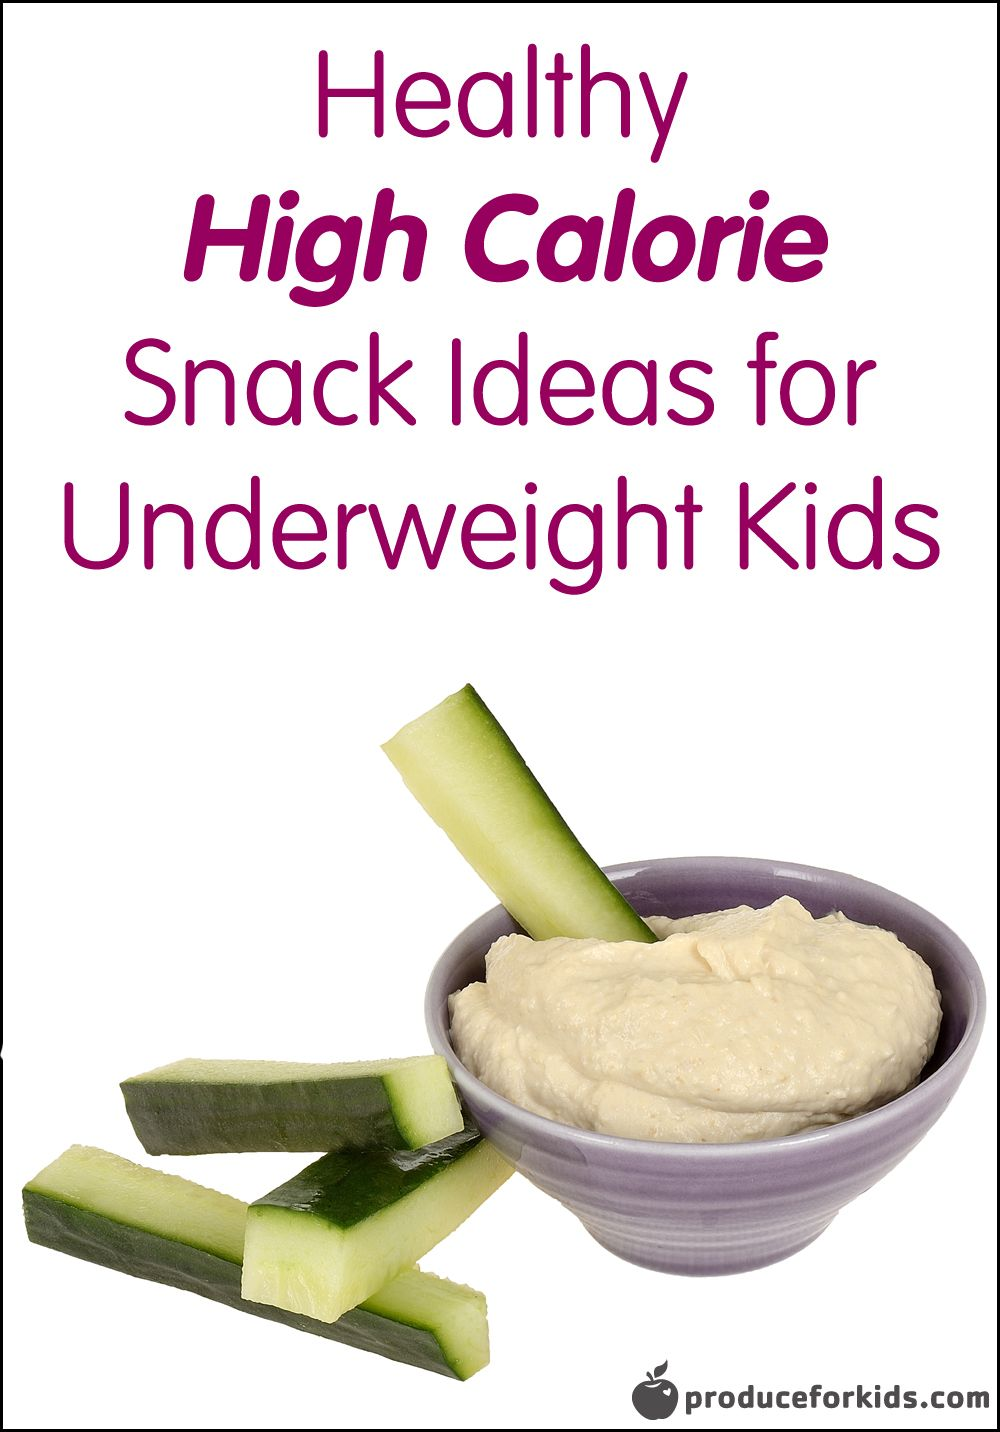 Healthy, HighCalorie Foods for Underweight Kids High